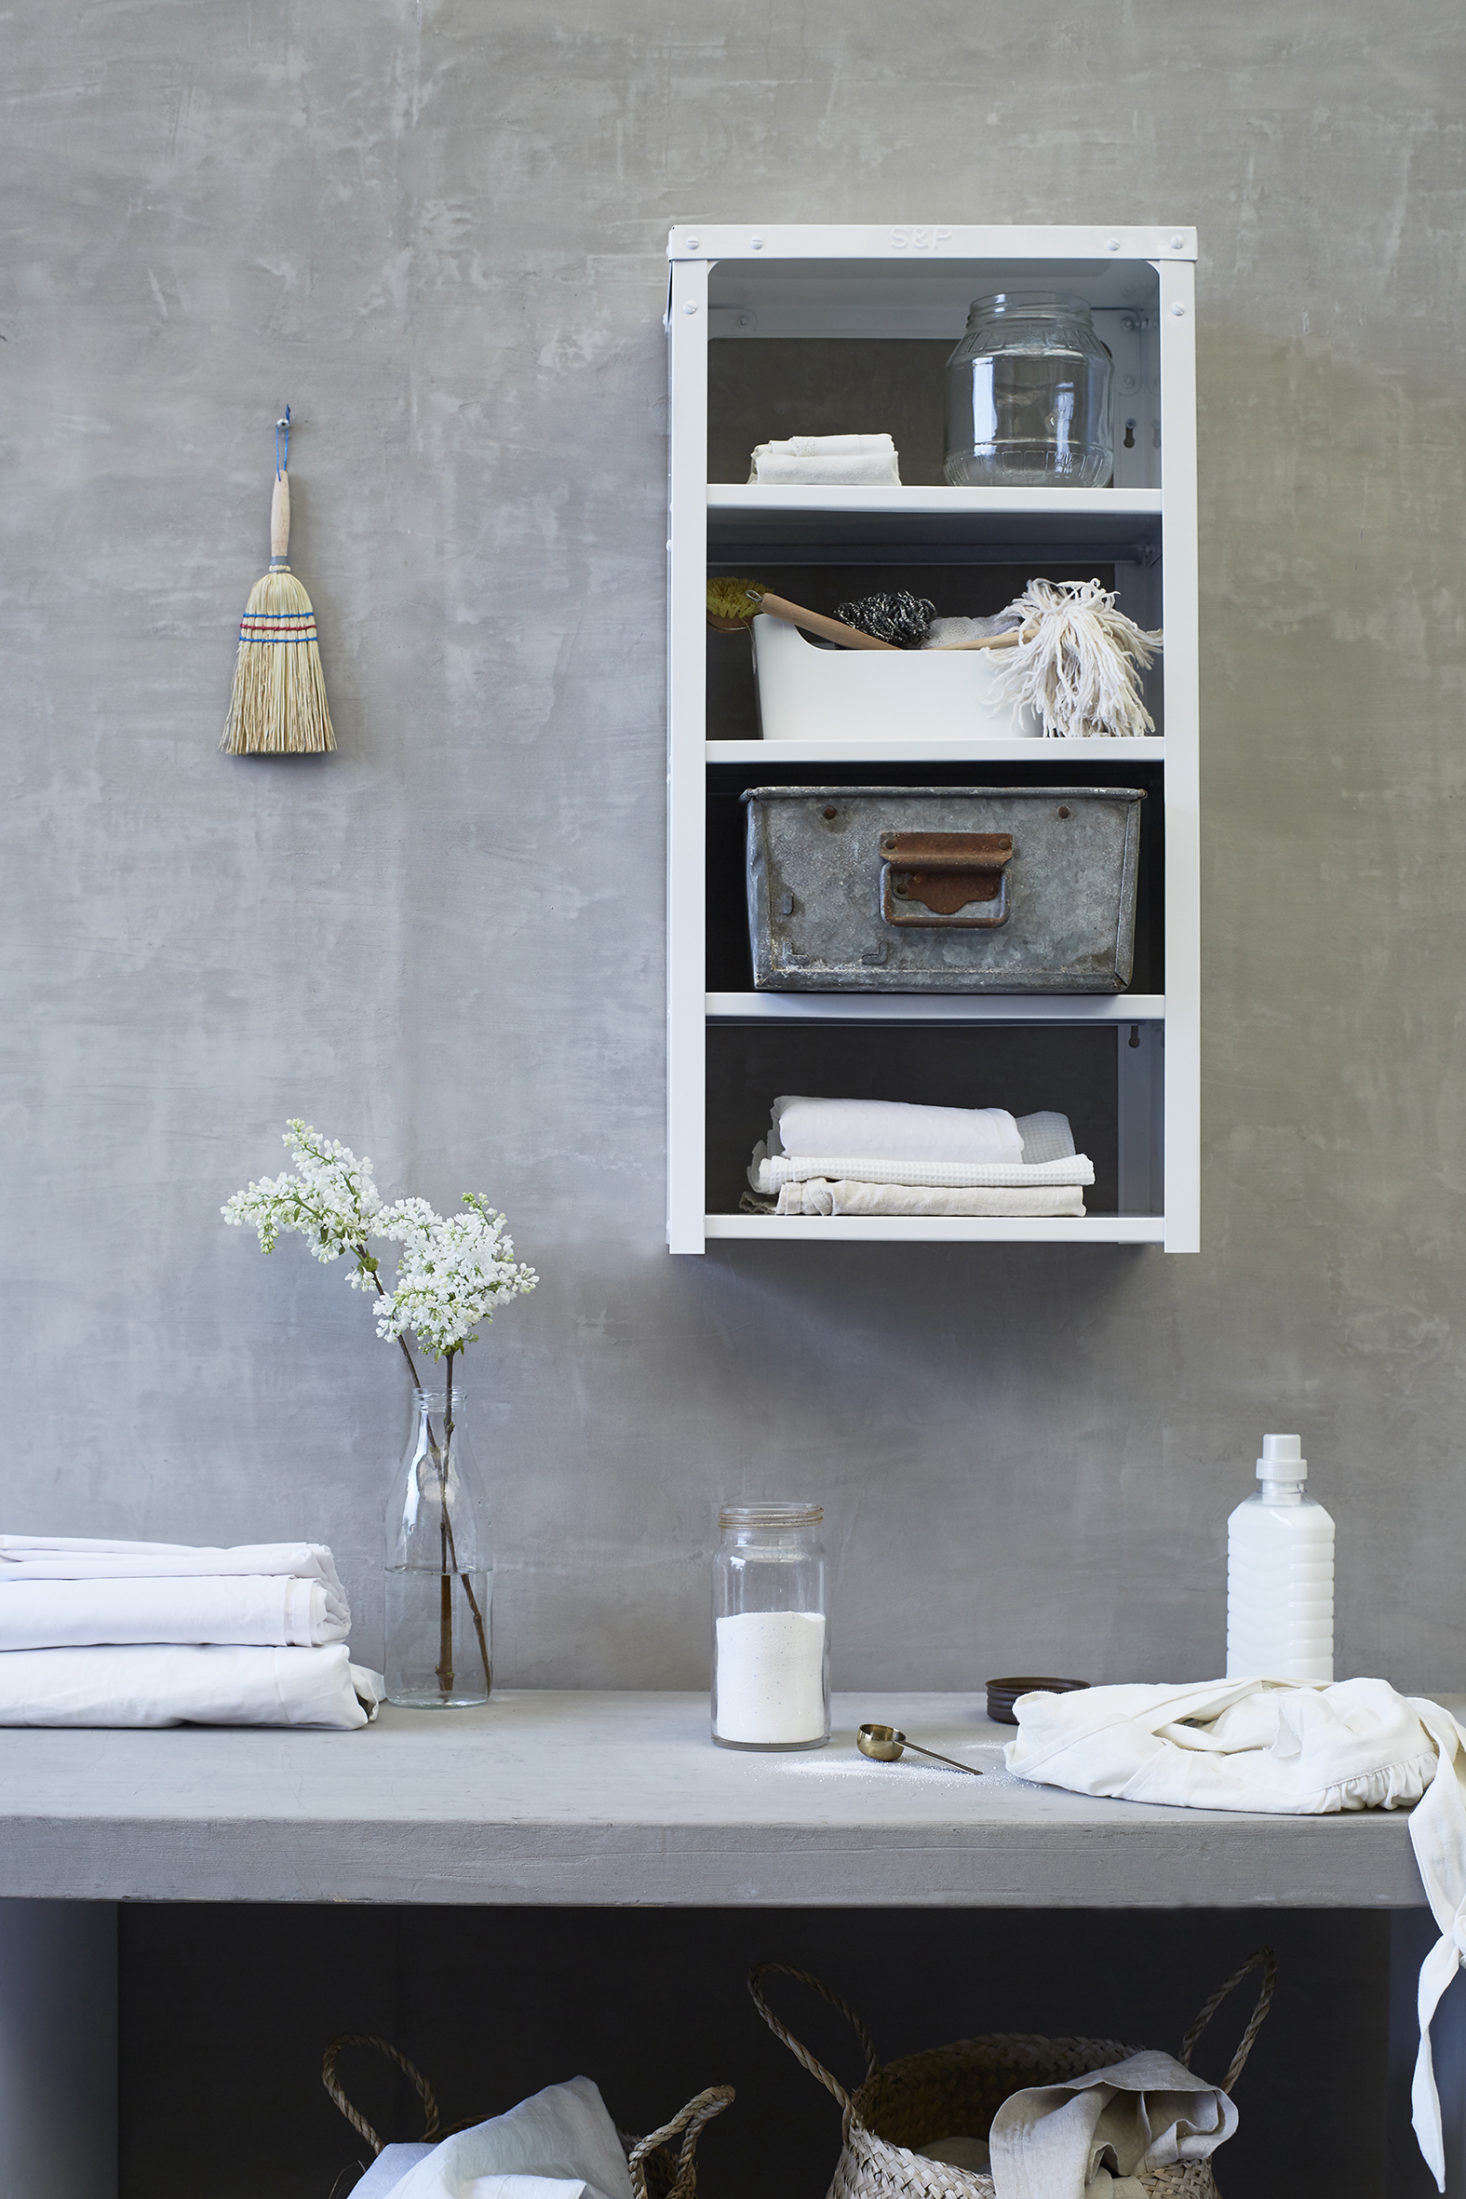 Indian stainless steel kitchen dish racks and shelves from Stovold ...